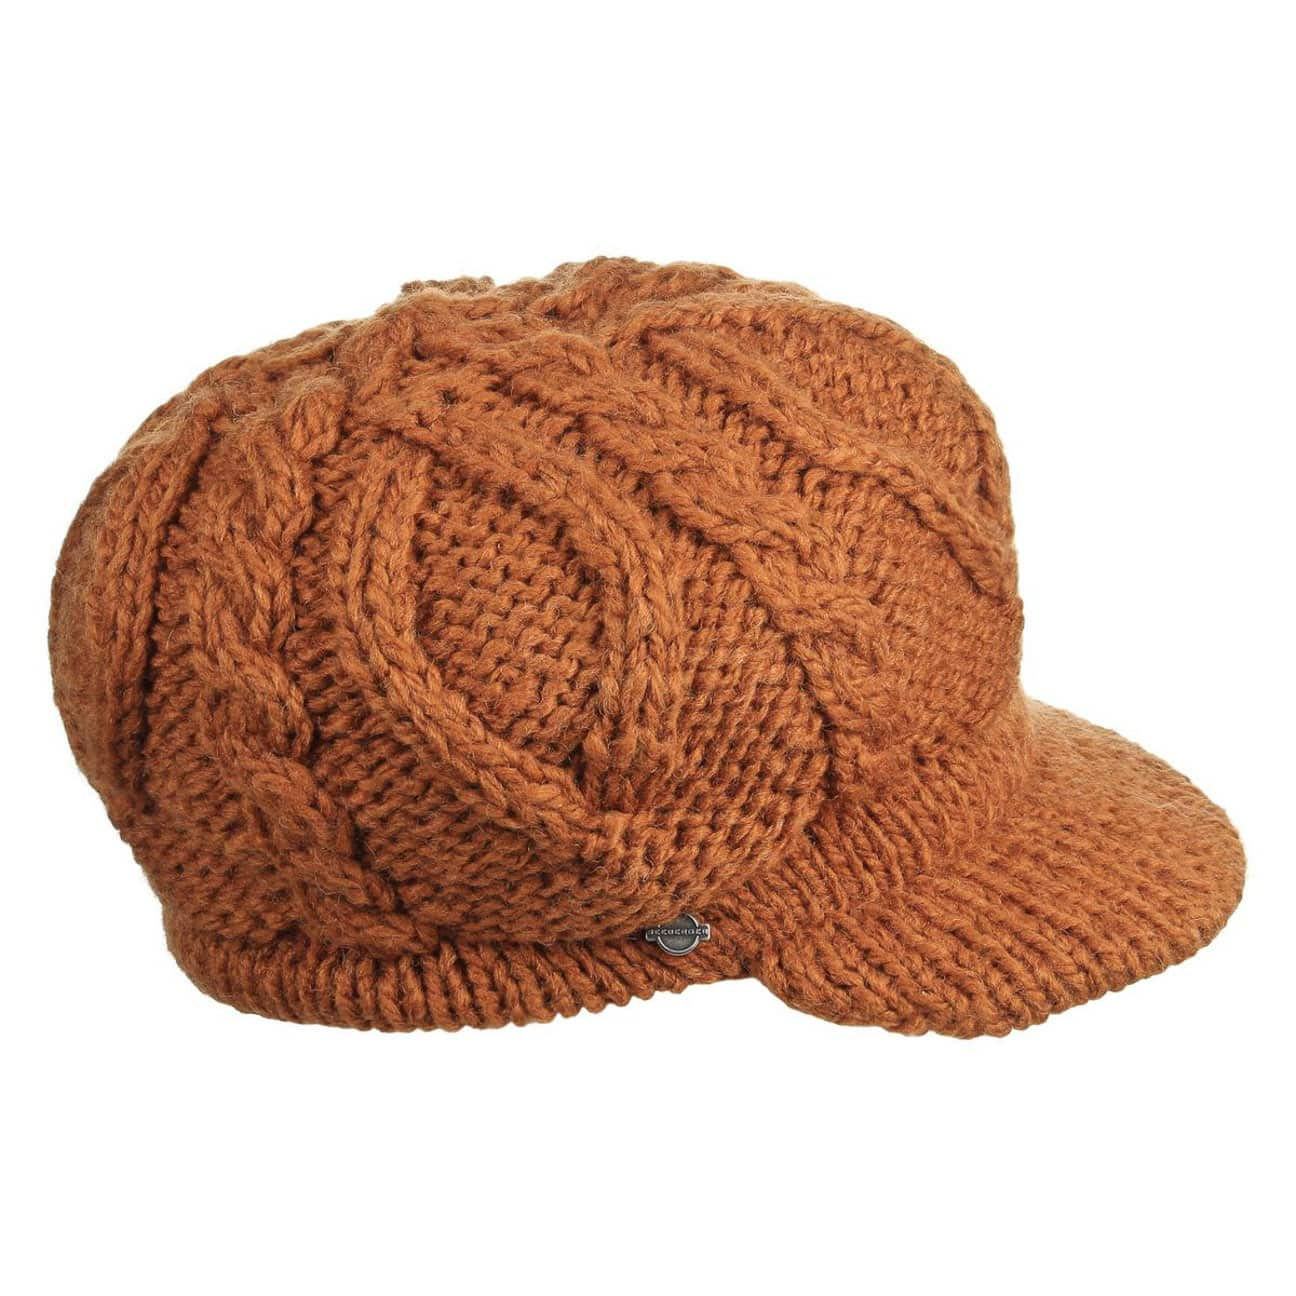 bf8fe0768a5 ... usa liberica knit baker boy hat by seeberger 1 390c9 e764c ...